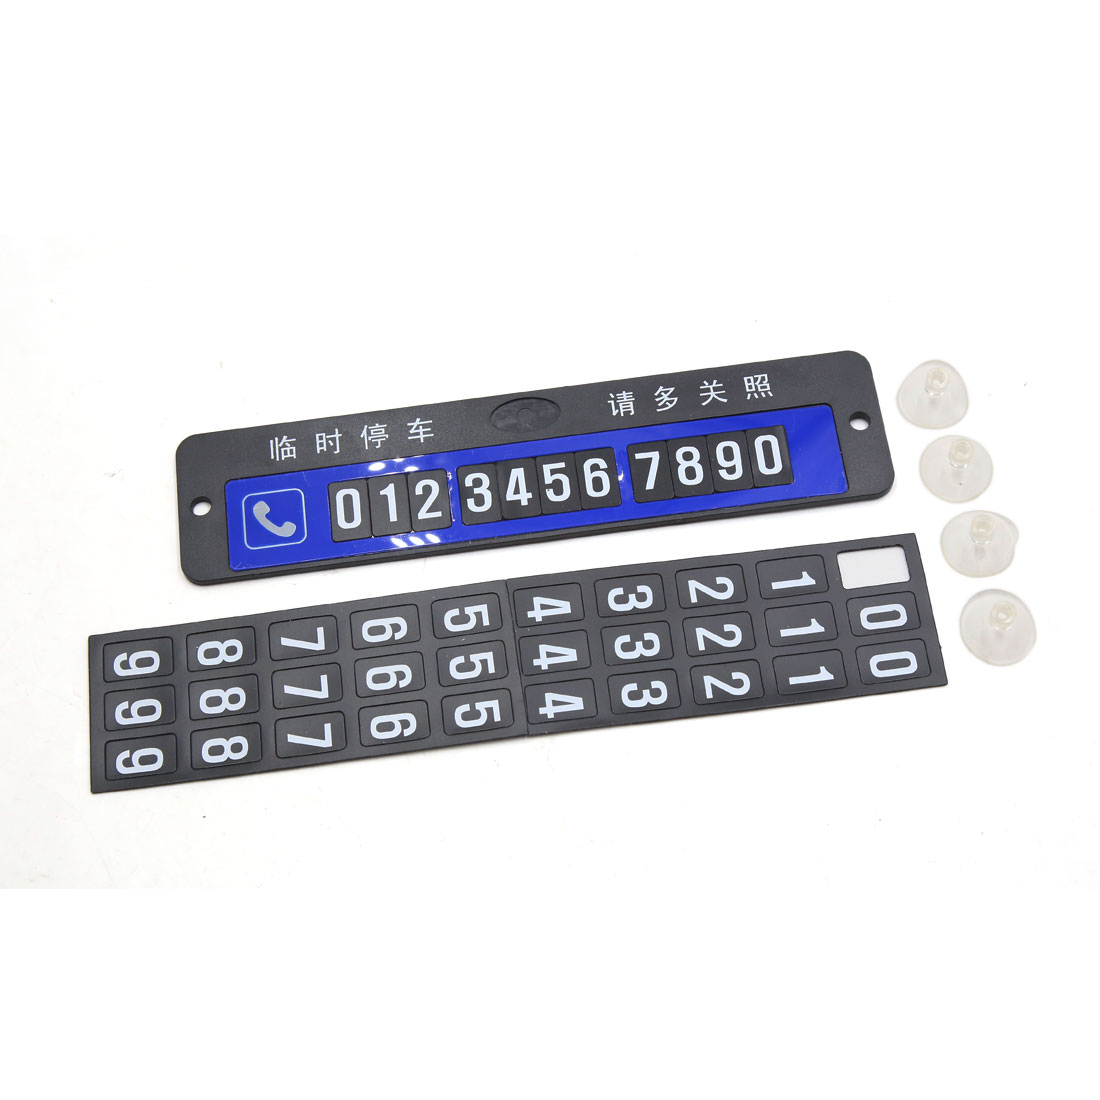 Blue Car Auto Temporary Parking Notification Phone Number Card 20 x 4.8 x 0.3cm